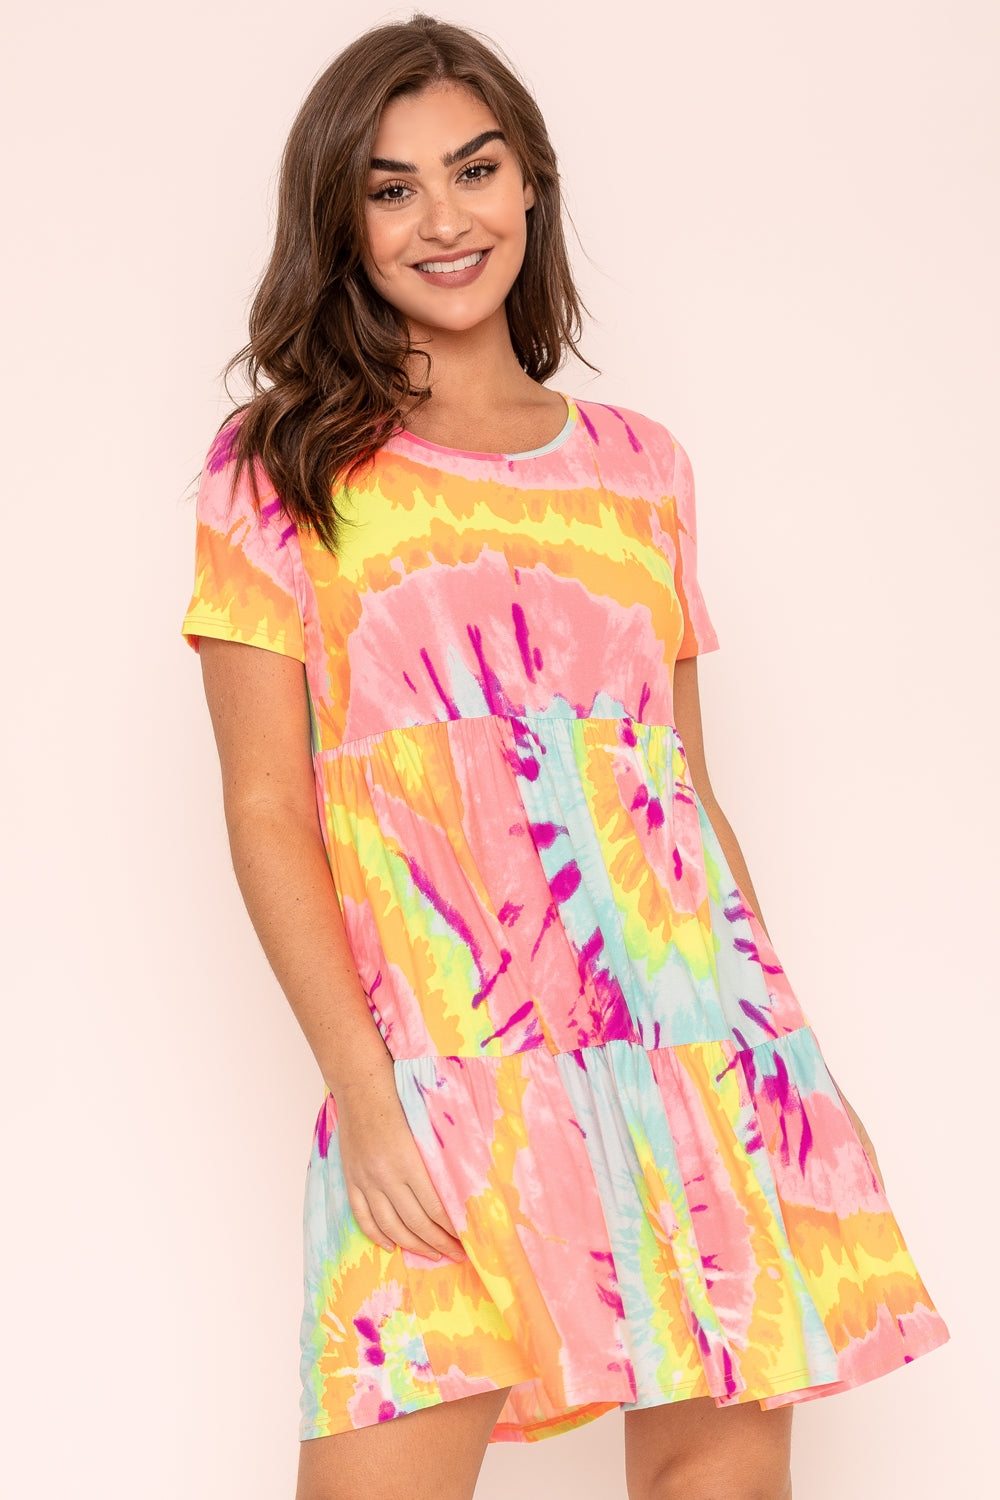 Coral Mint Swirl Tie-Dye Short Sleeve Tiered Mini Dress